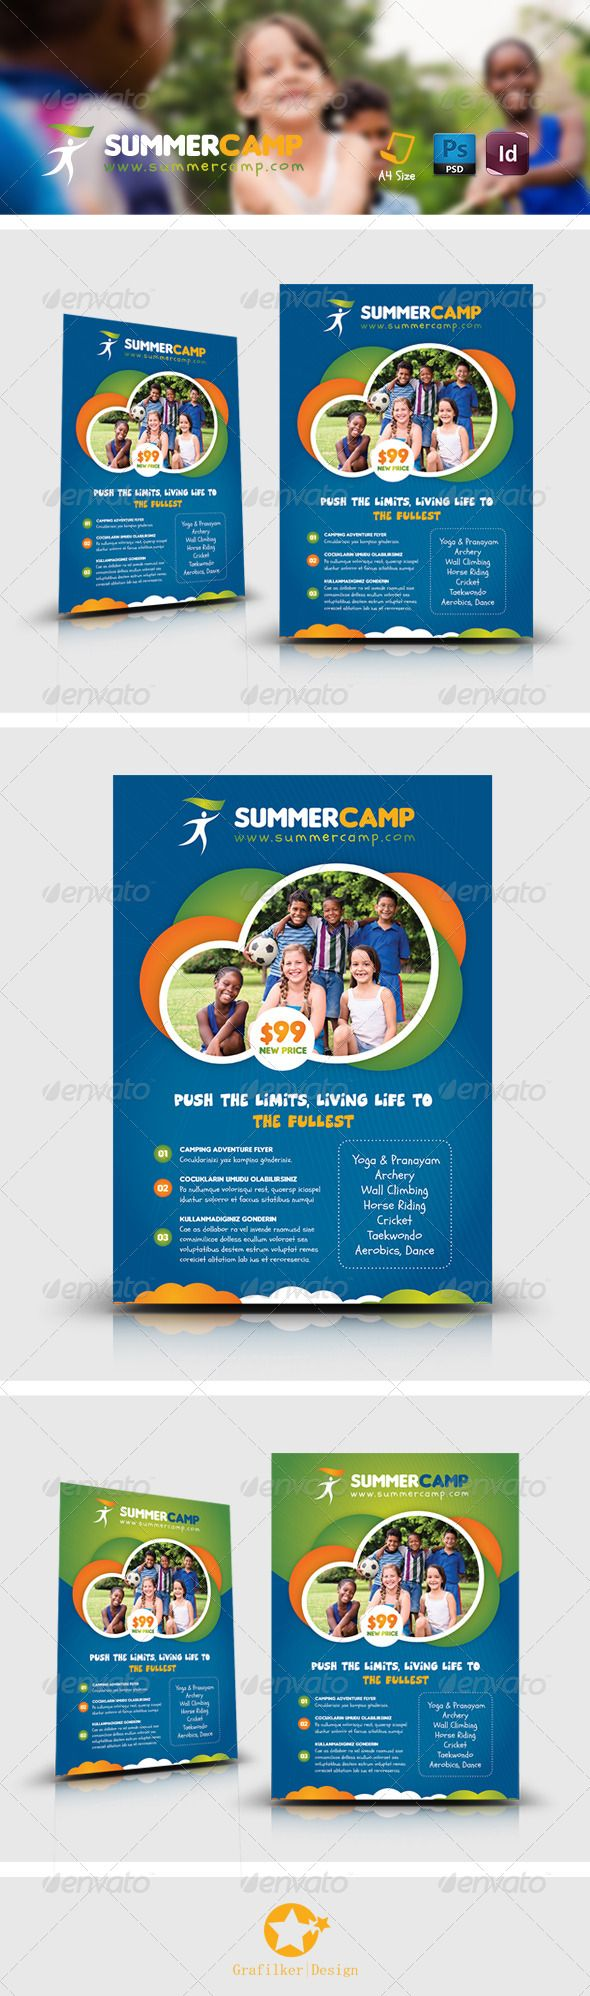 10 best images about camp on pinterest behance fonts for Camp brochure template